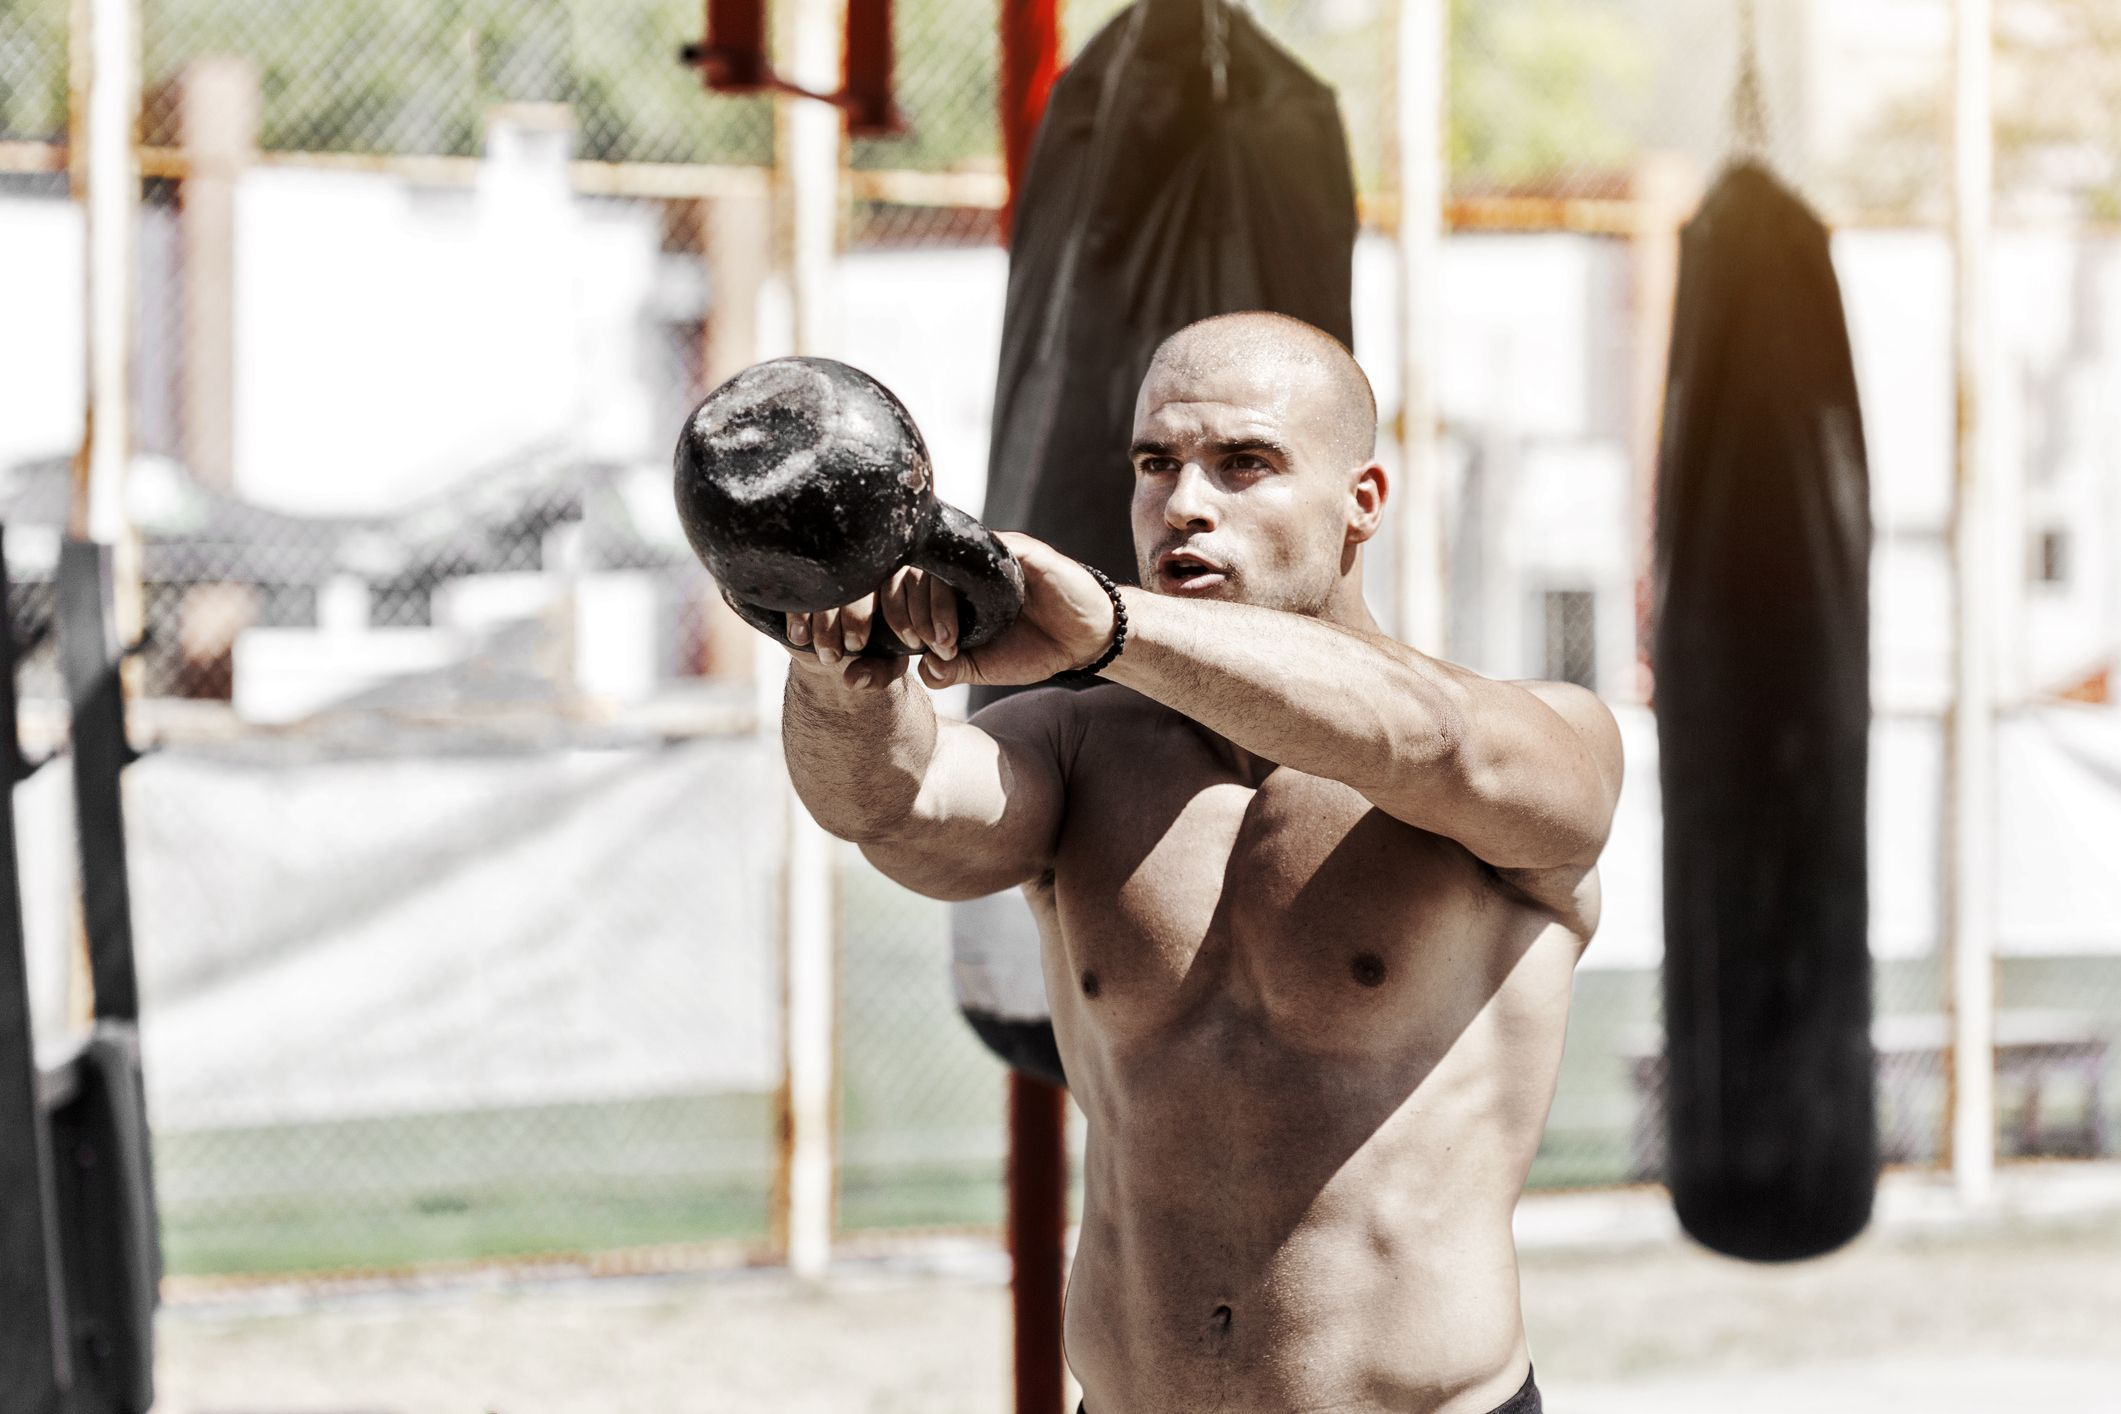 Three Ways to Perfect Your Kettlebell Swing